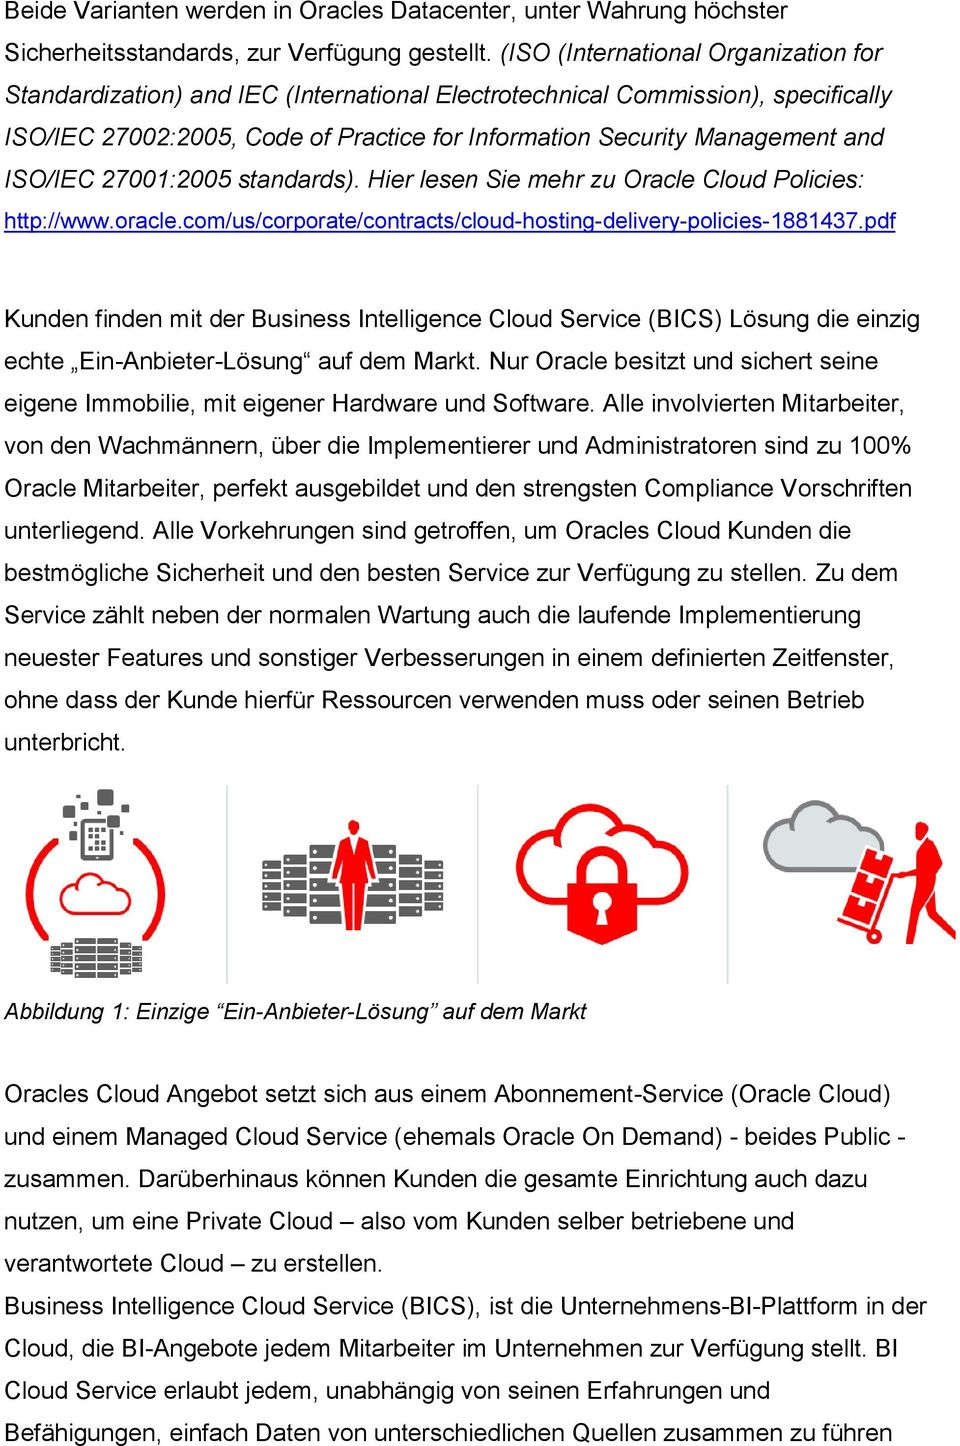 ISO/IEC 27001:2005 standards). Hier lesen Sie mehr zu Oracle Cloud Policies: http://www.oracle.com/us/corporate/contracts/cloud-hosting-delivery-policies-1881437.